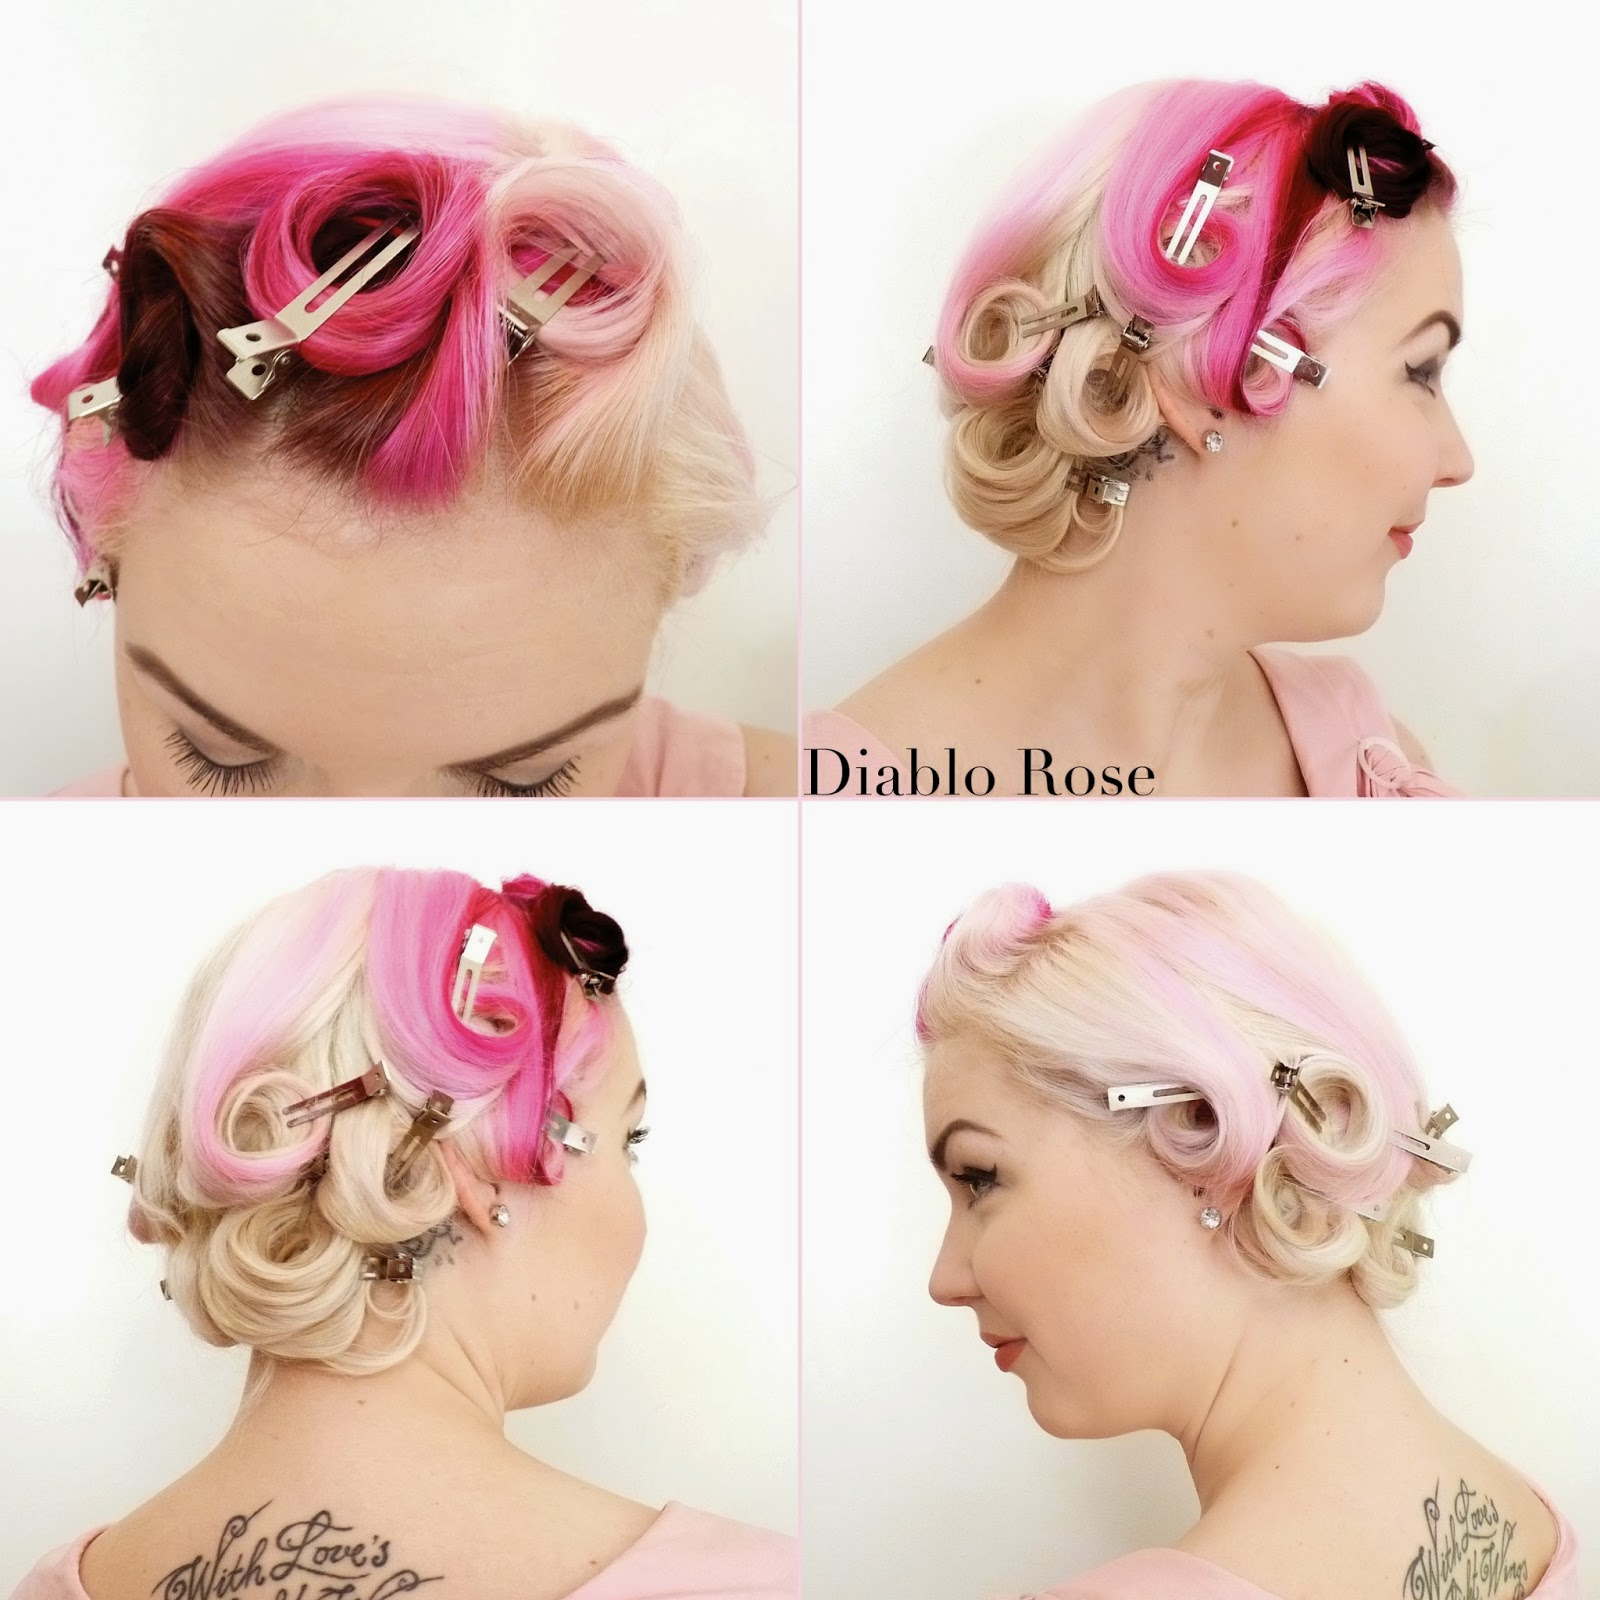 Follow the pin curl set below leave the curls to cool completely